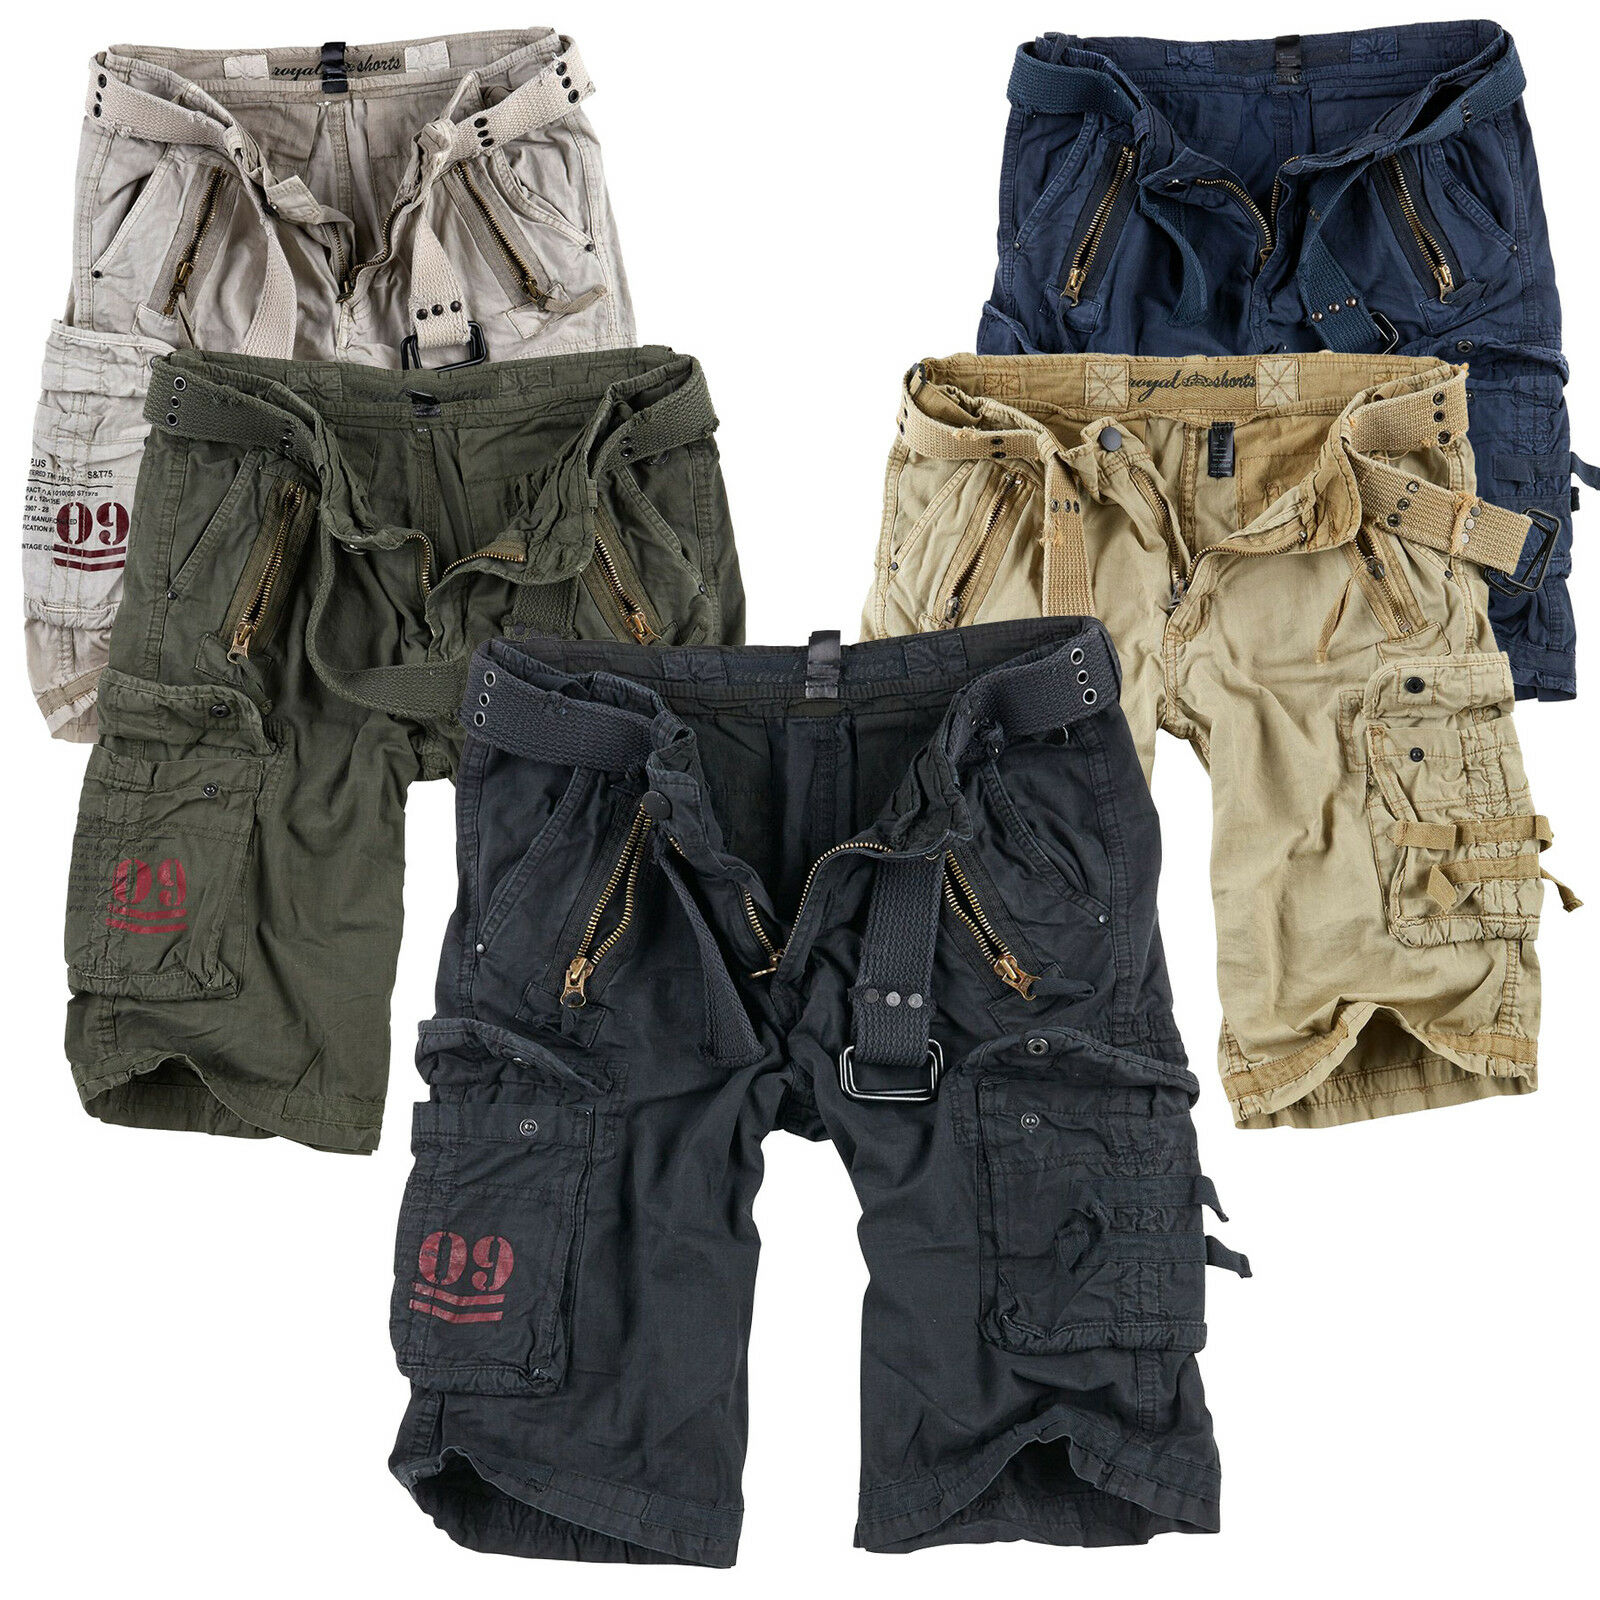 f23e3f59146728 Surplus Raw Vintage Royal Shorts Premium Bermuda Shorts Us Army Cargo  Trousers